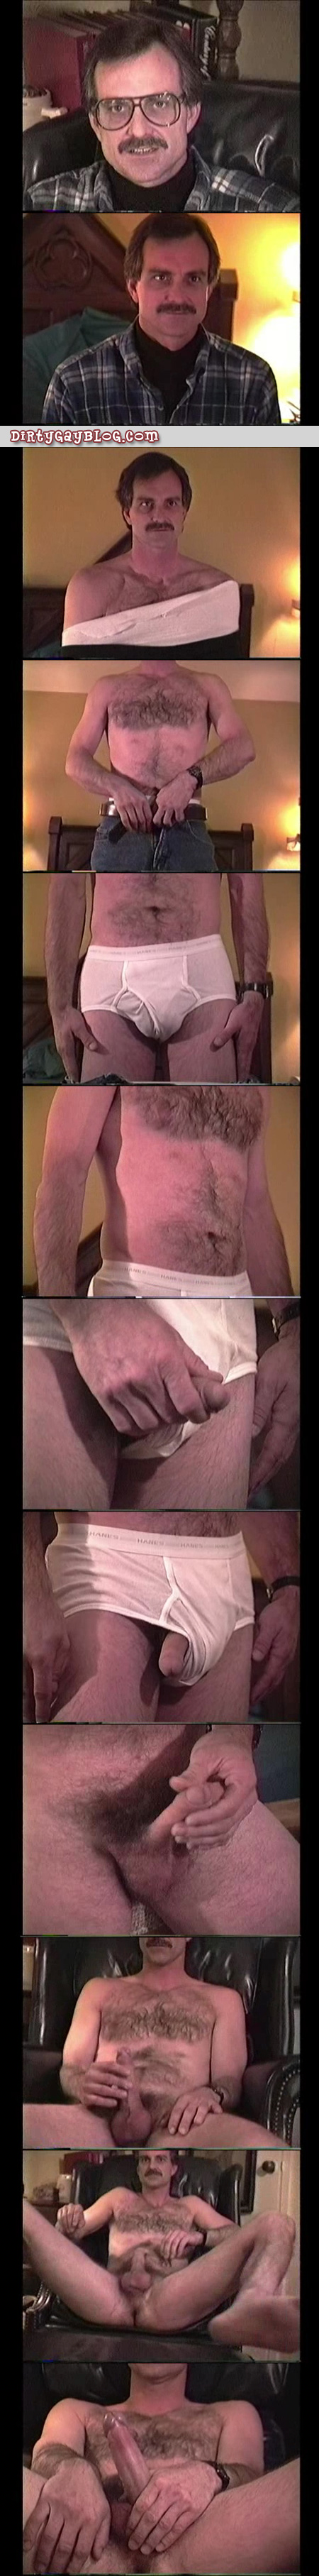 Hairy Daddy in his white BVD's and nude with an erection.